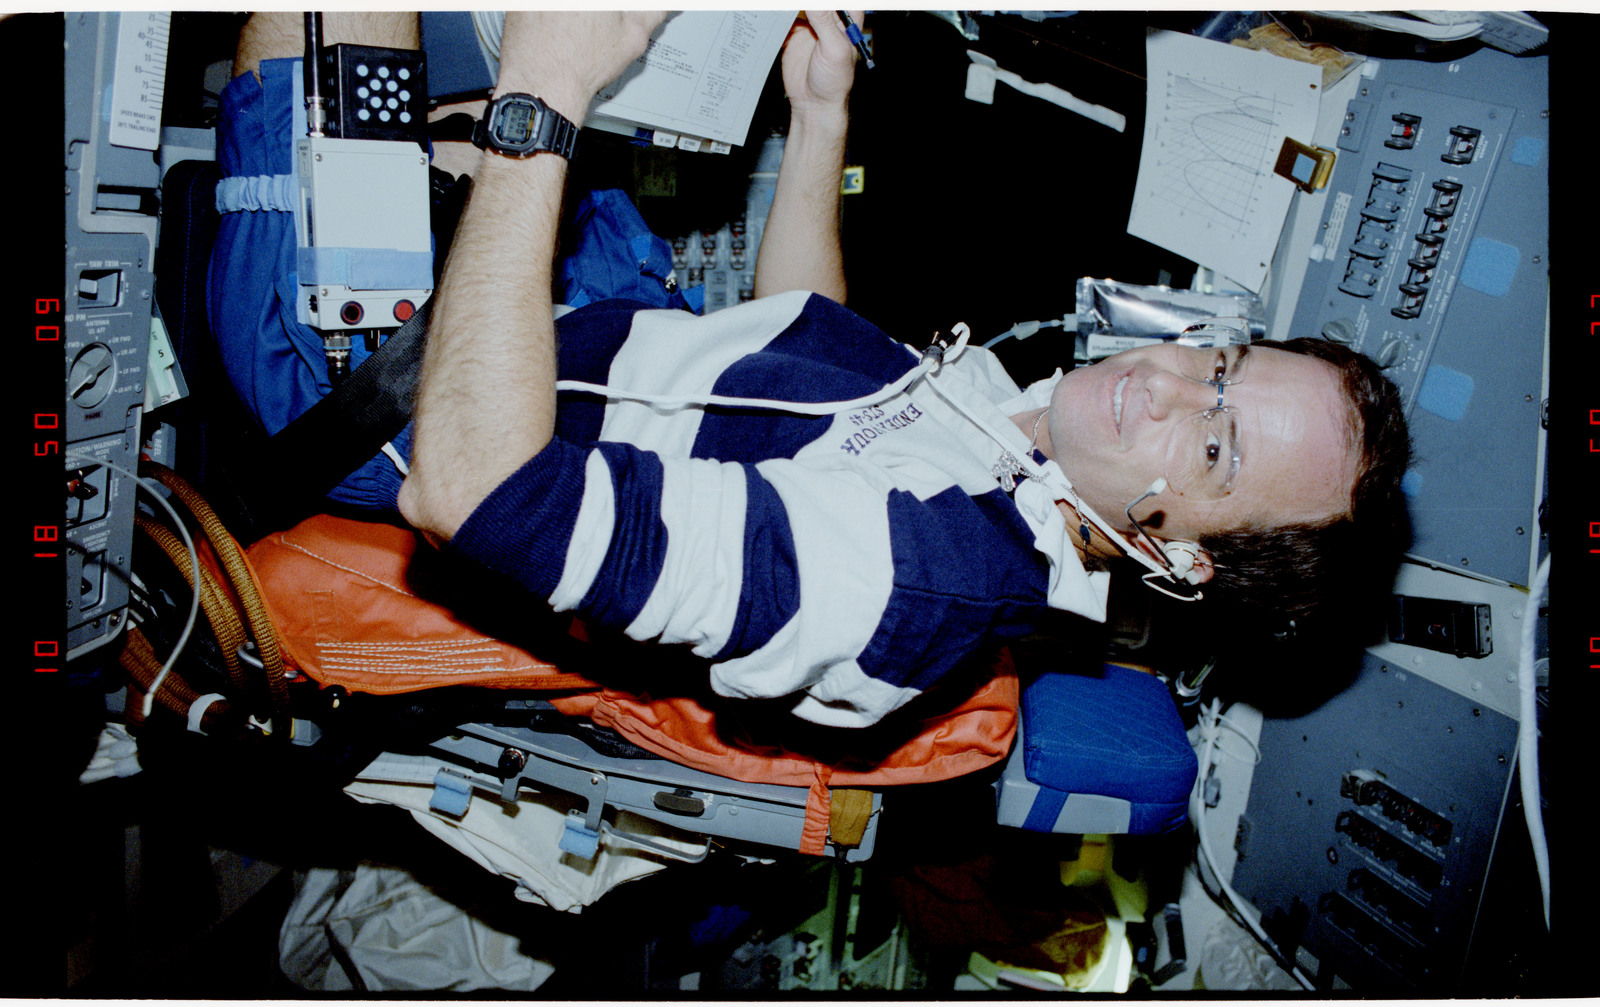 S49-20-023 - STS-049 - Crewmember, sitting in the pilot's chair, reviewing a procedures document.